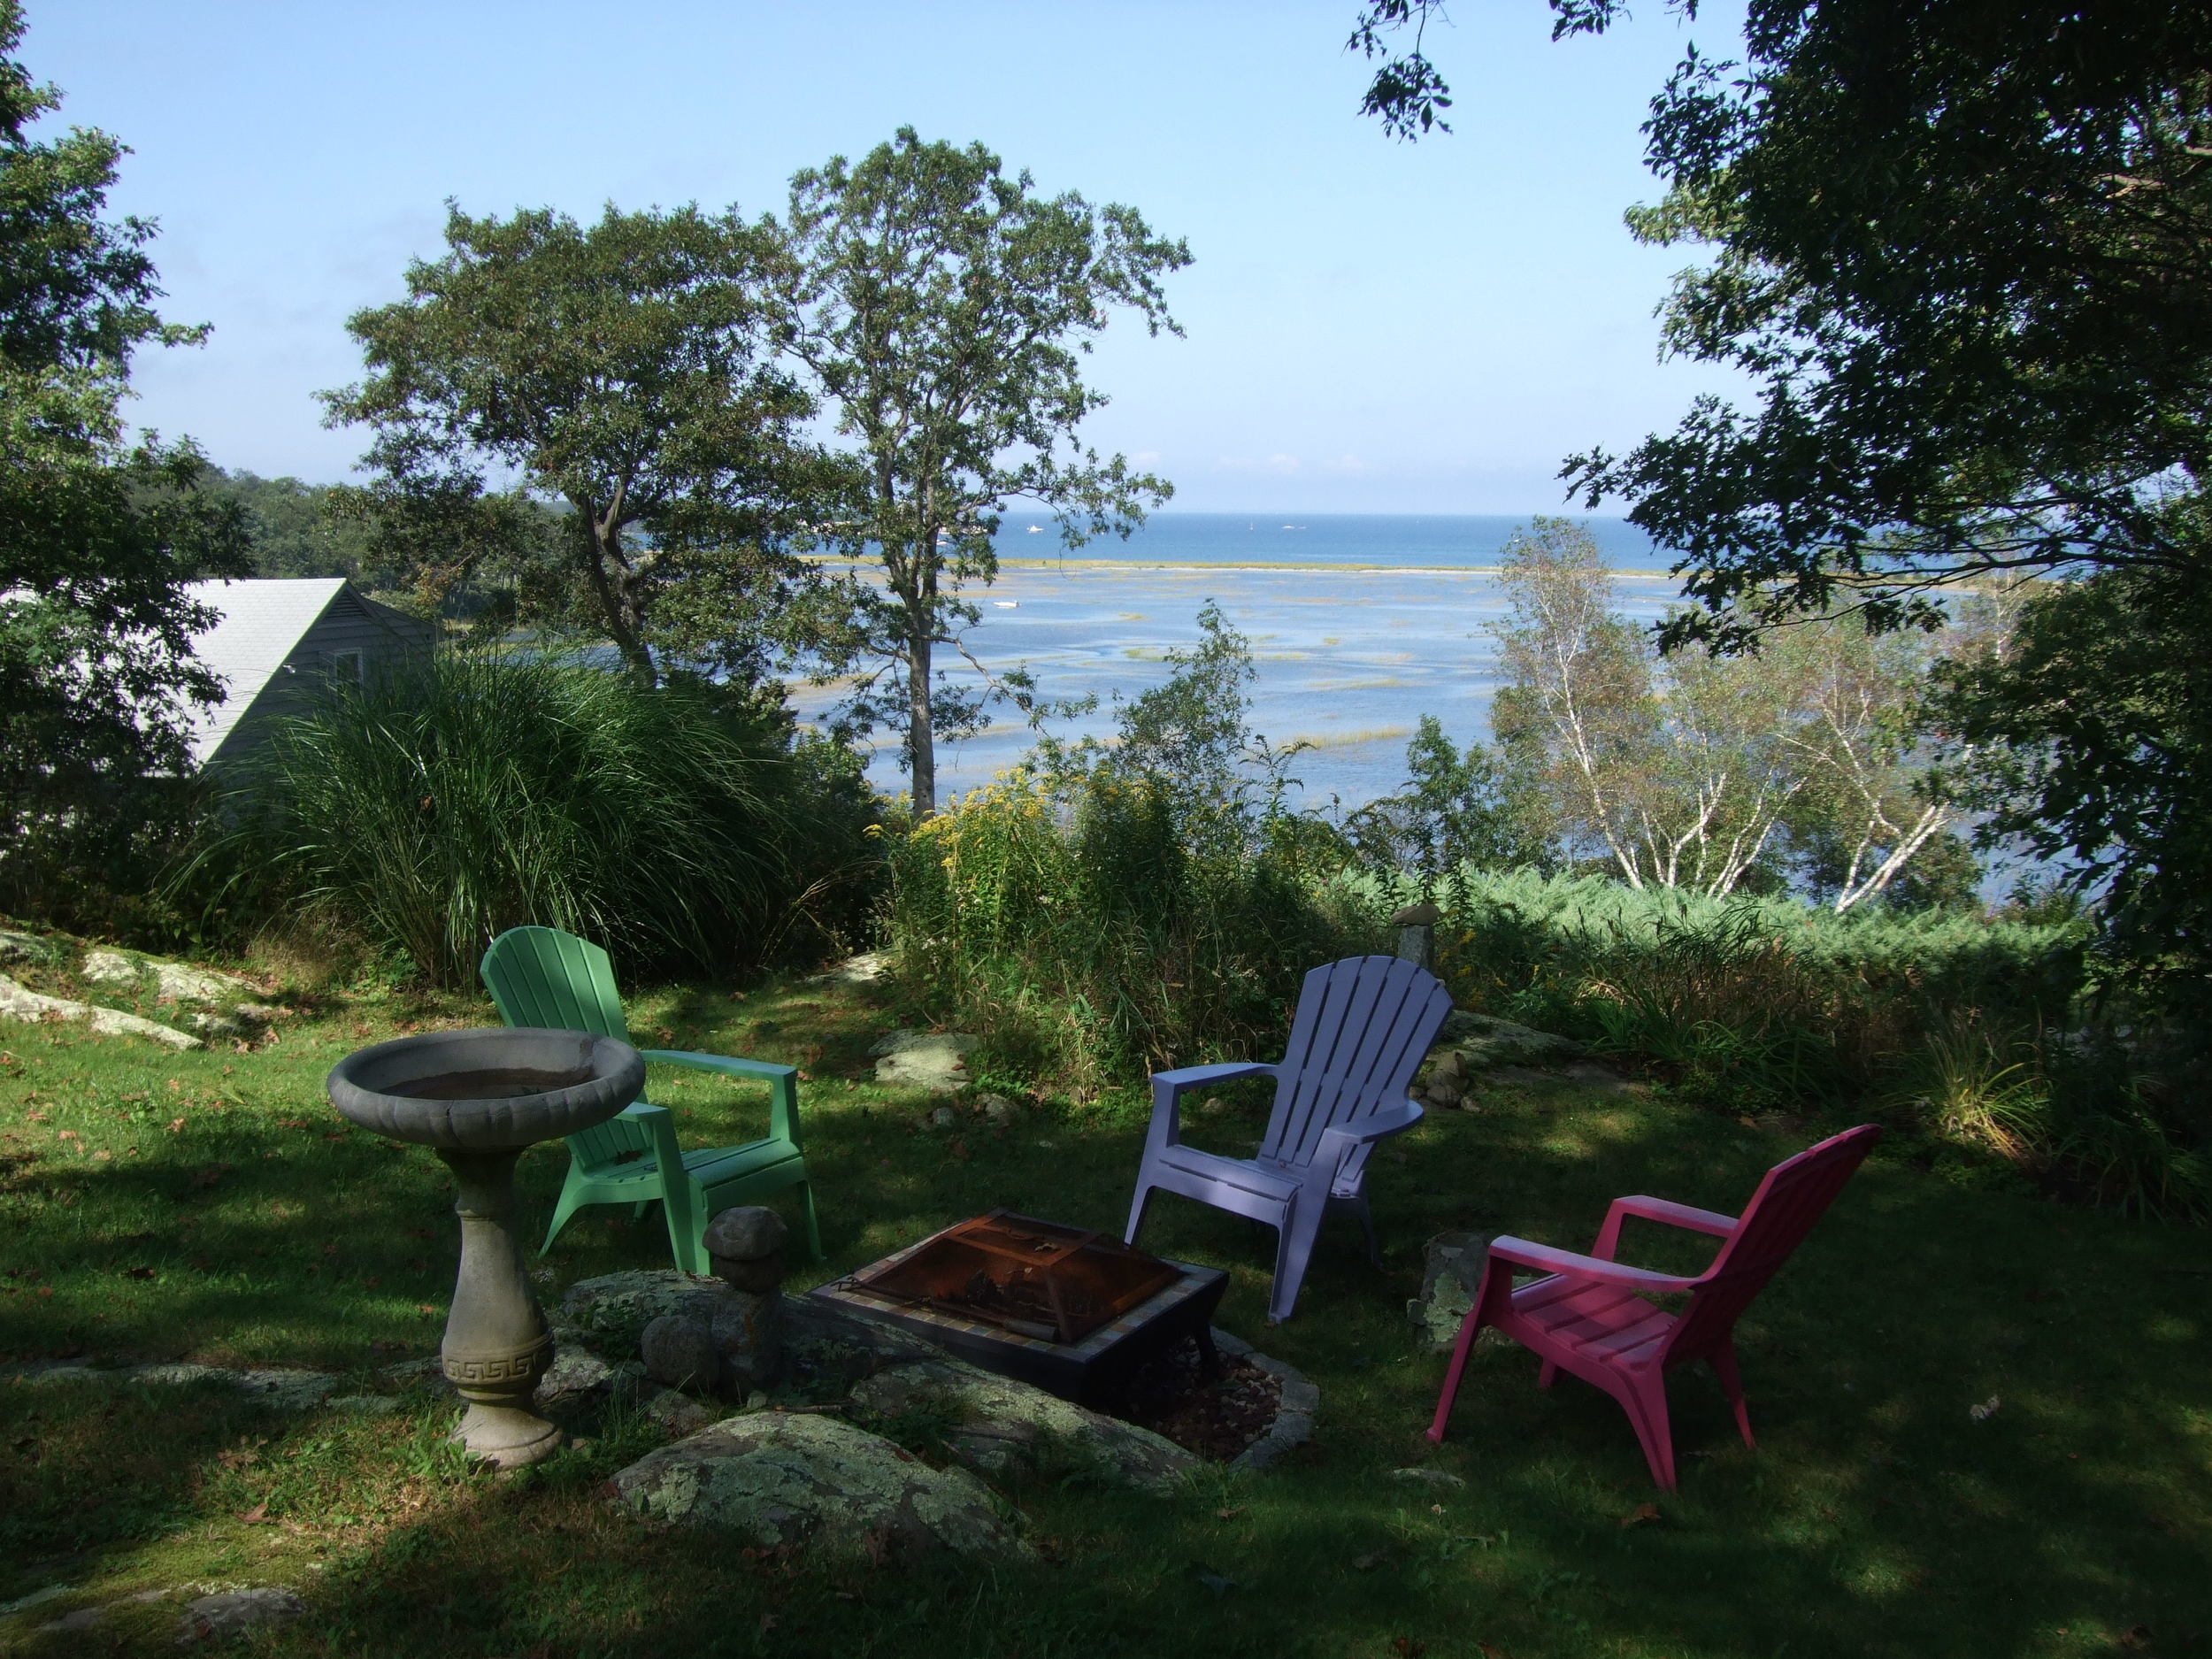 Fire pit. Scituate, MA